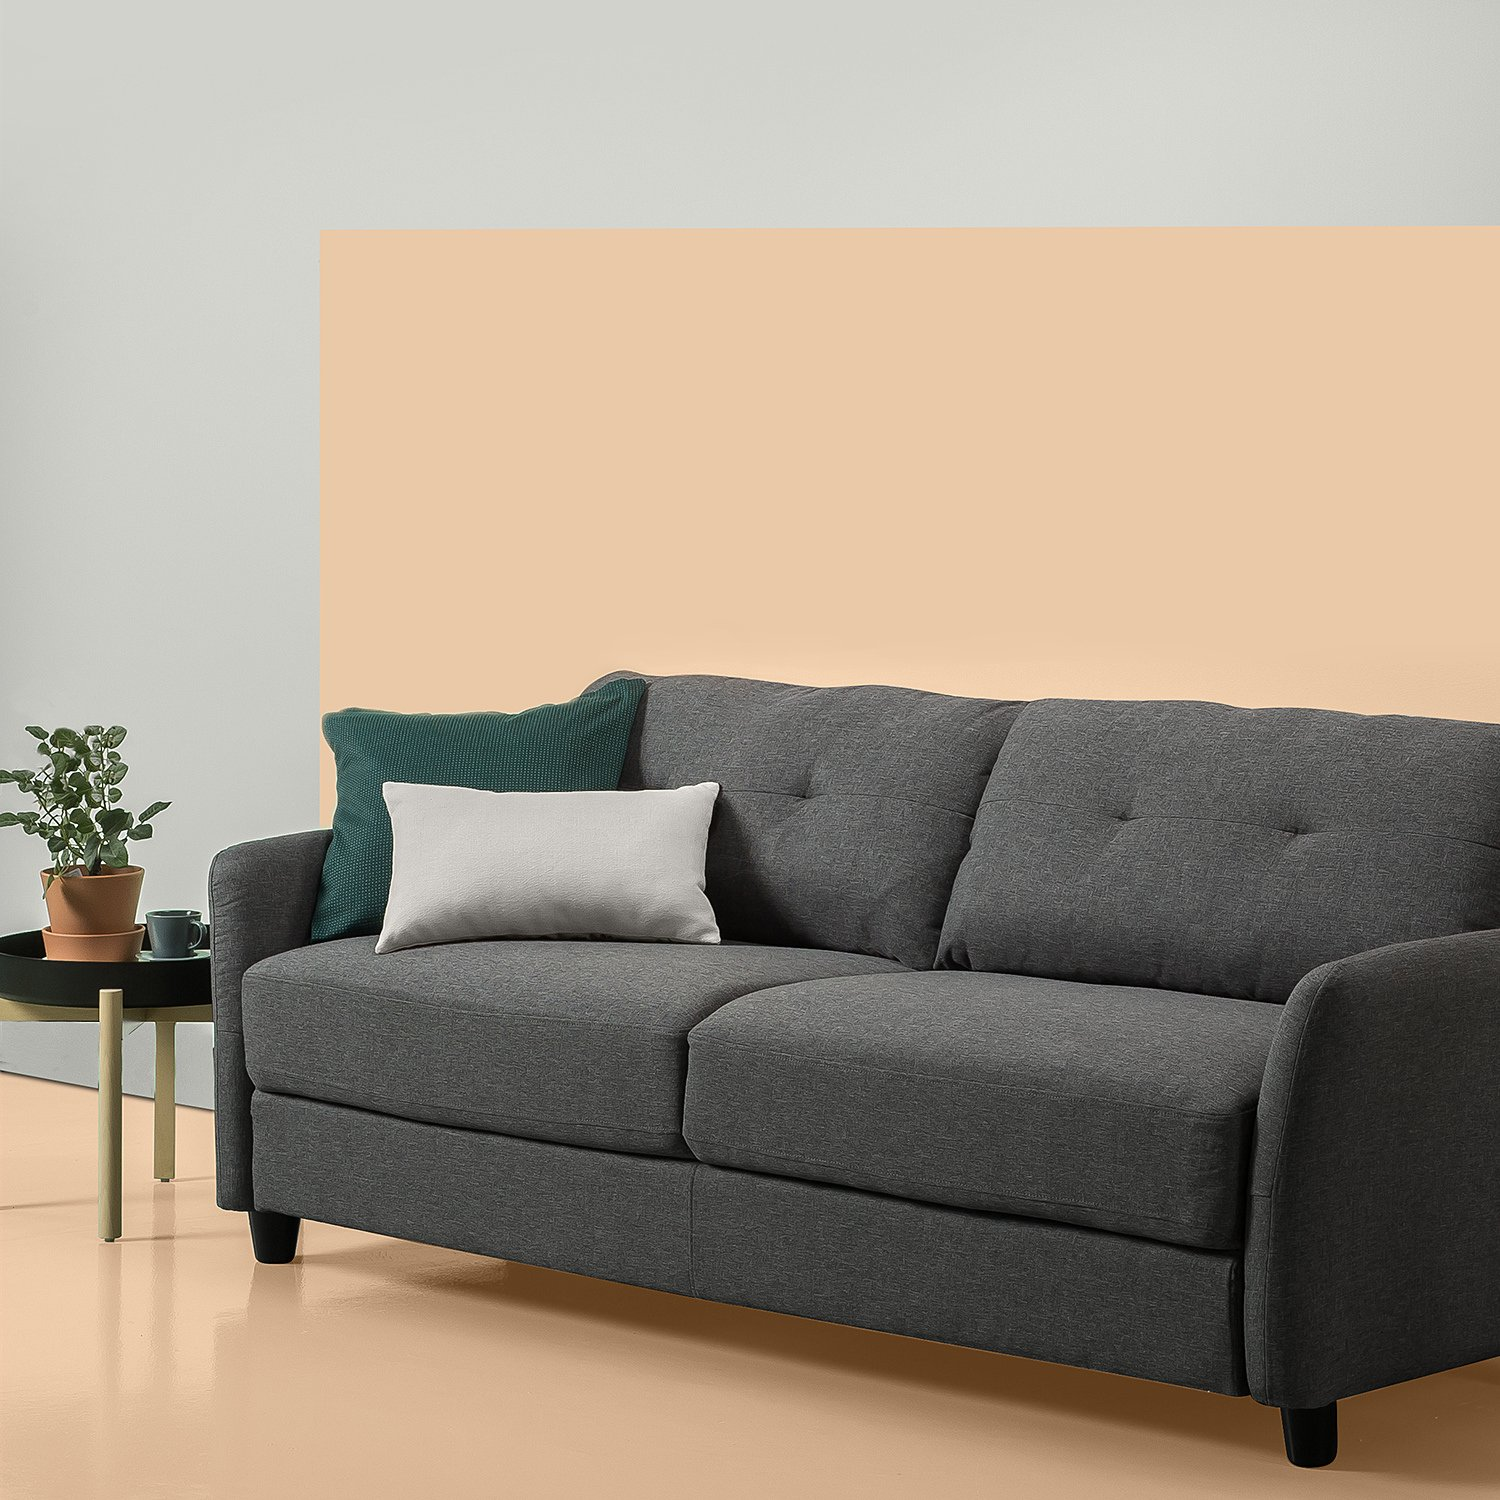 Zinus Contemporary Upholstered 78in Sofa / Living Room Couch, Dark Grey